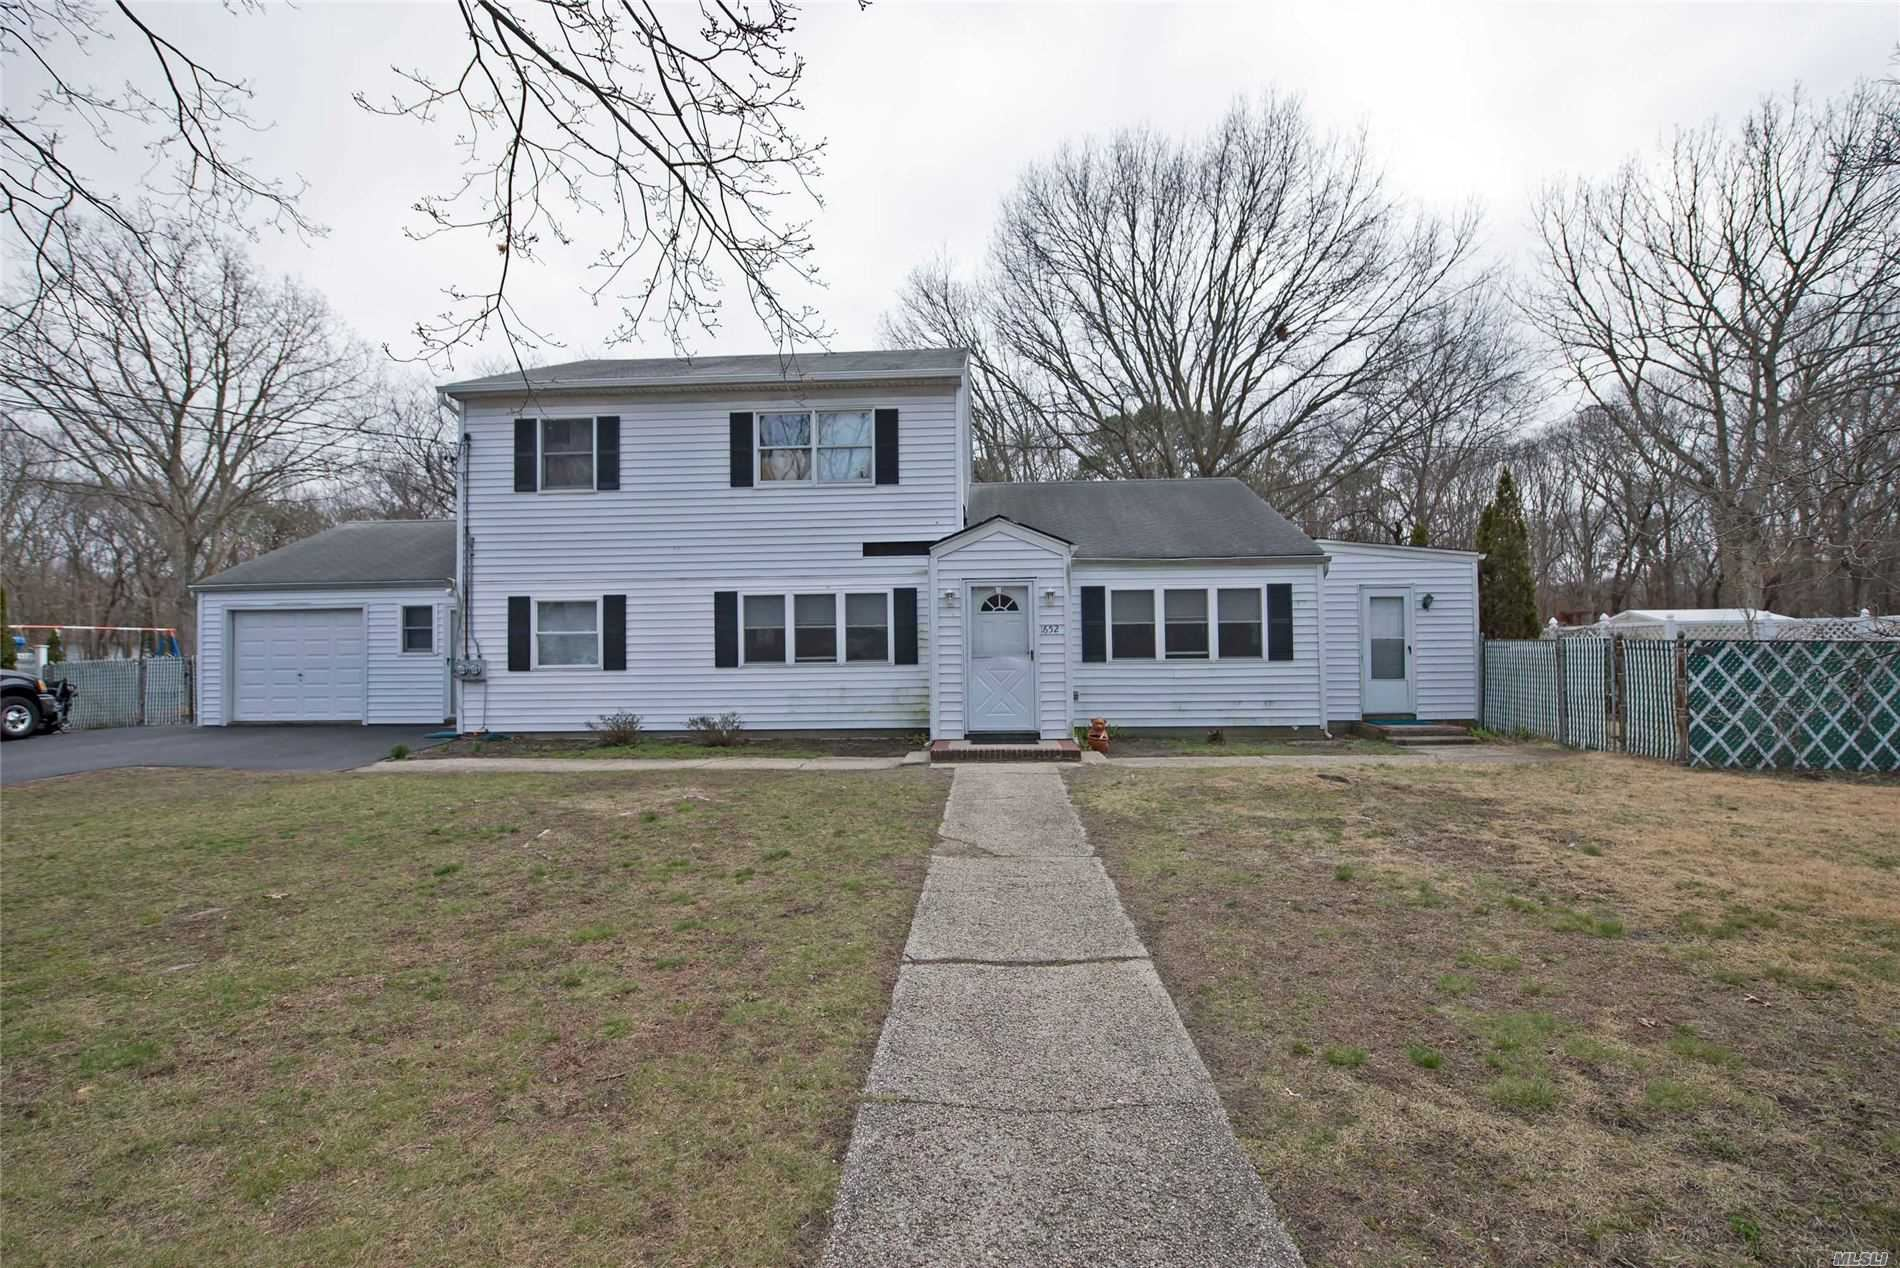 1652 Spur Drive, Central Islip, NY 11722 - MLS#: 3208825